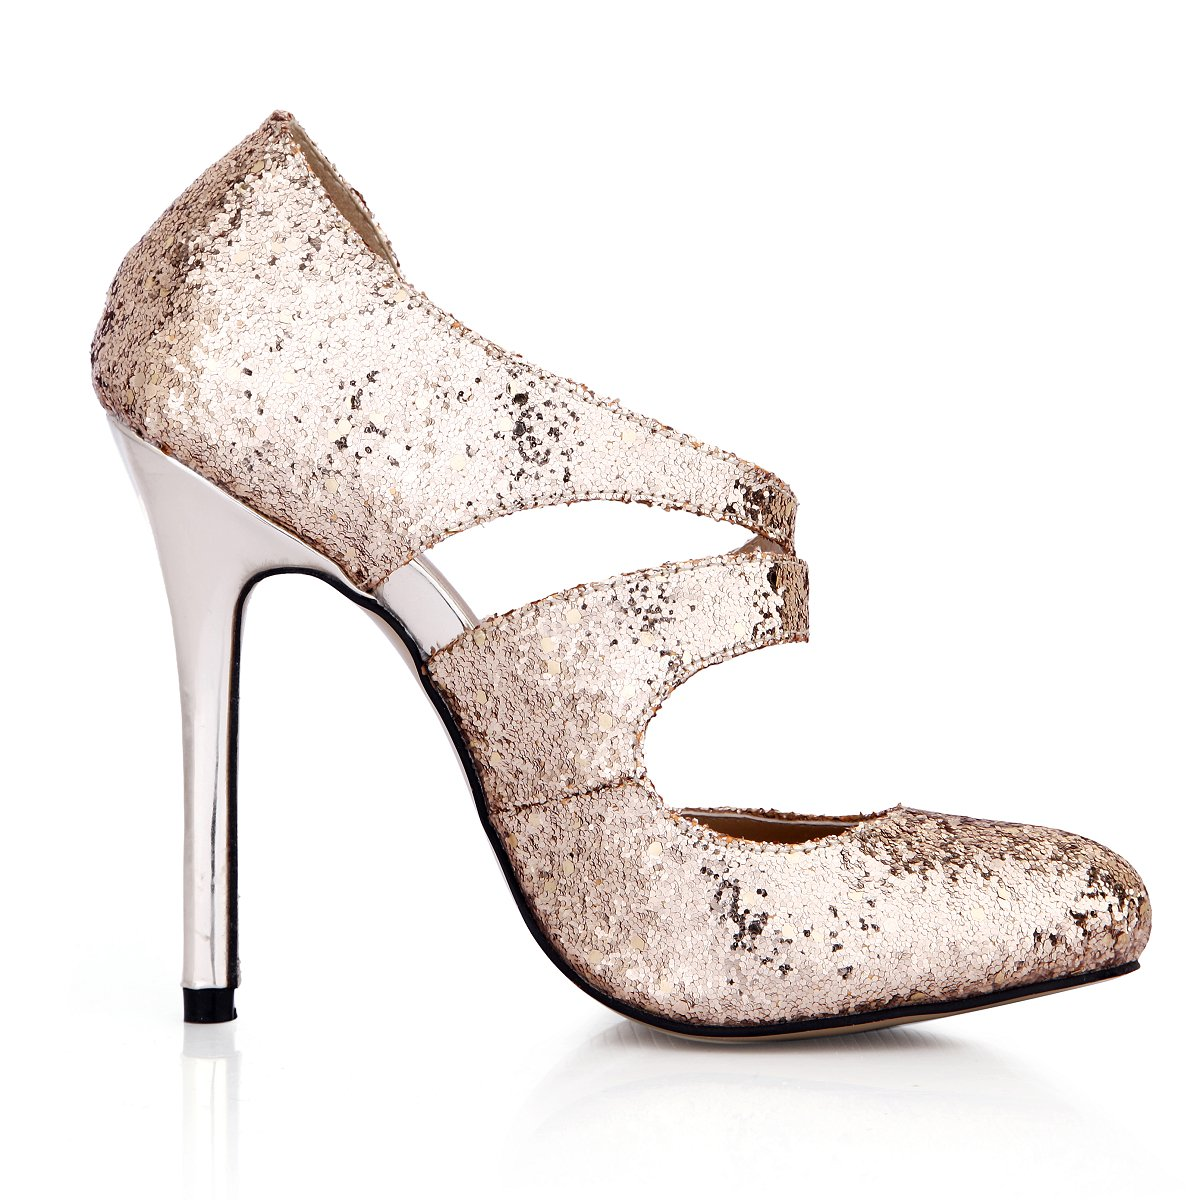 be66b61c3803 Amazon.com   Dress Pointy Stiletto Pumps Glitter Gold Women Fashion High  Heels DolphinGirl Shoes Prime   Heeled Sandals